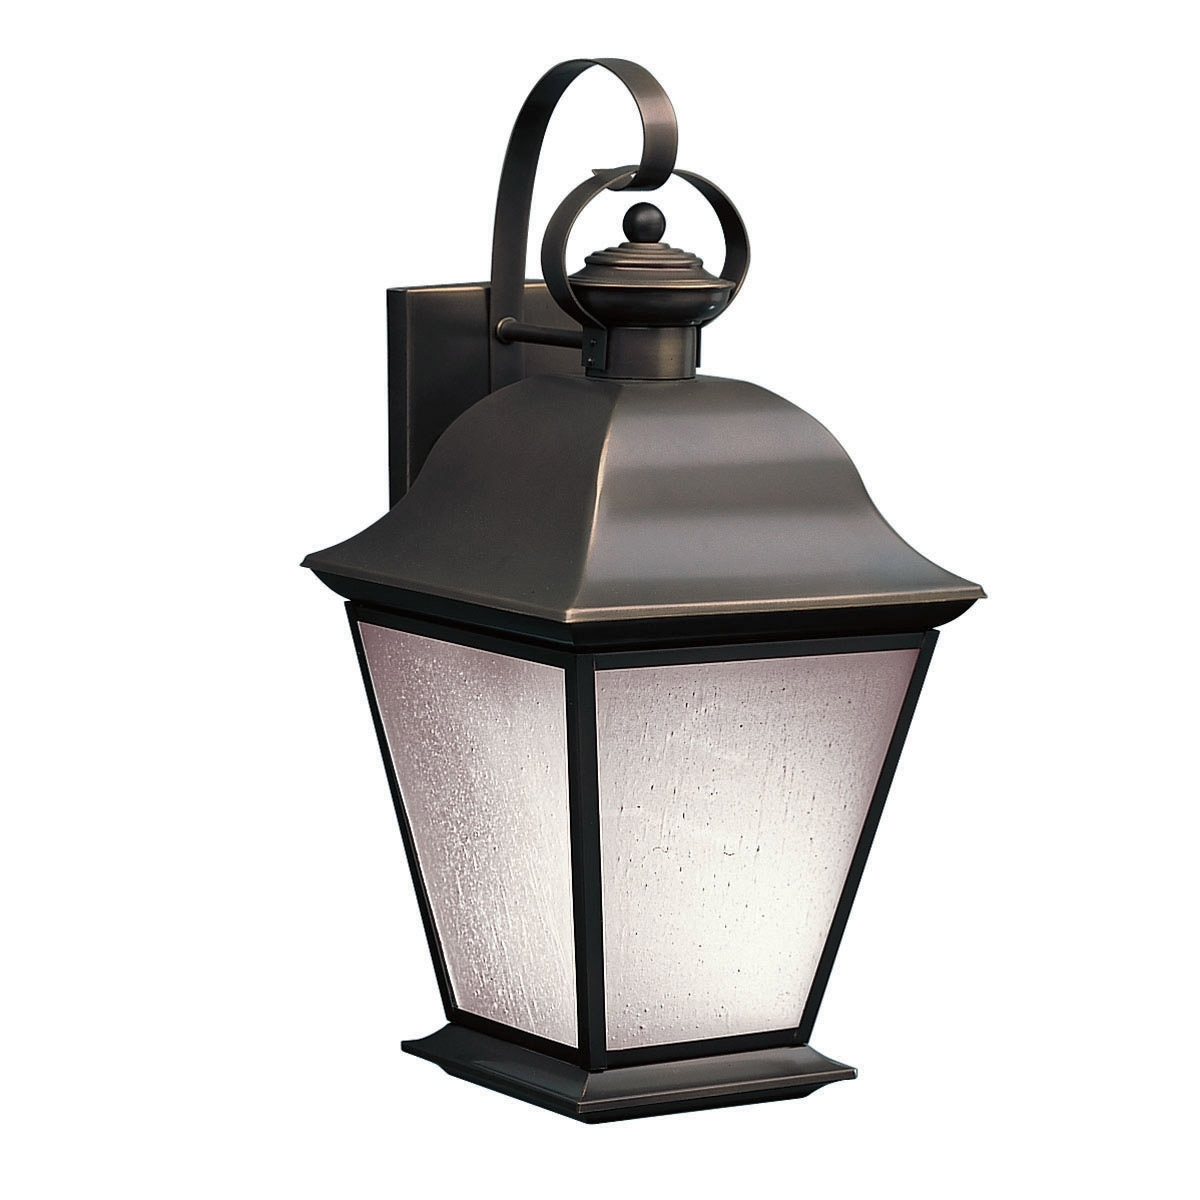 Best And Newest Wall Mounted Outdoor Lanterns With Wall Lights Design: Solar Wall Mounted Outdoor Lights In, Solar (View 2 of 20)